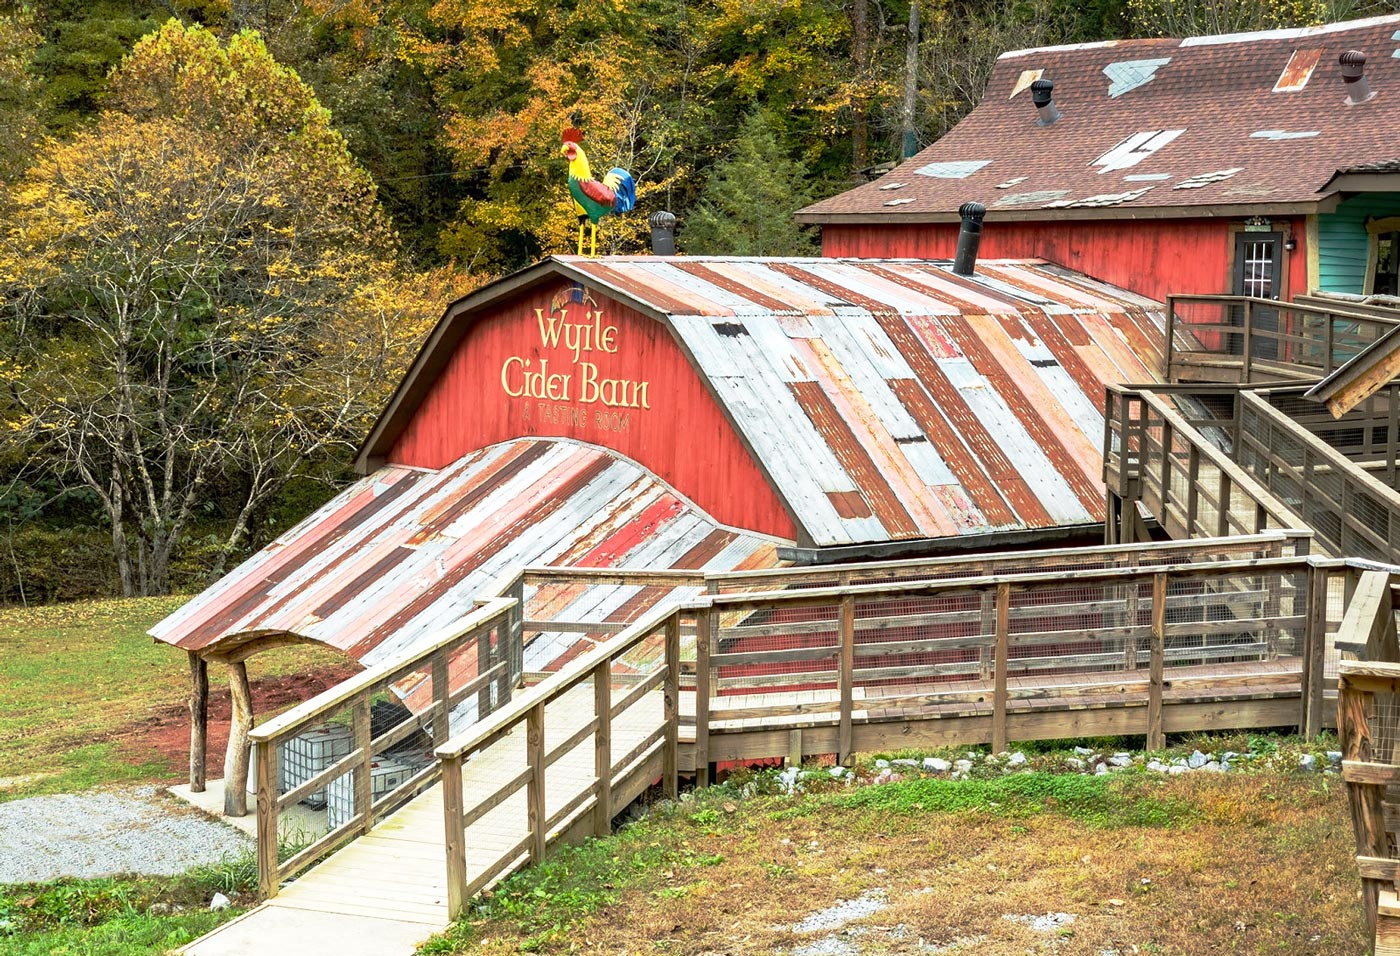 Wyile Cider Barn at Foxfire Mountain - Red Barn with multicolored roof and rainbow rooster